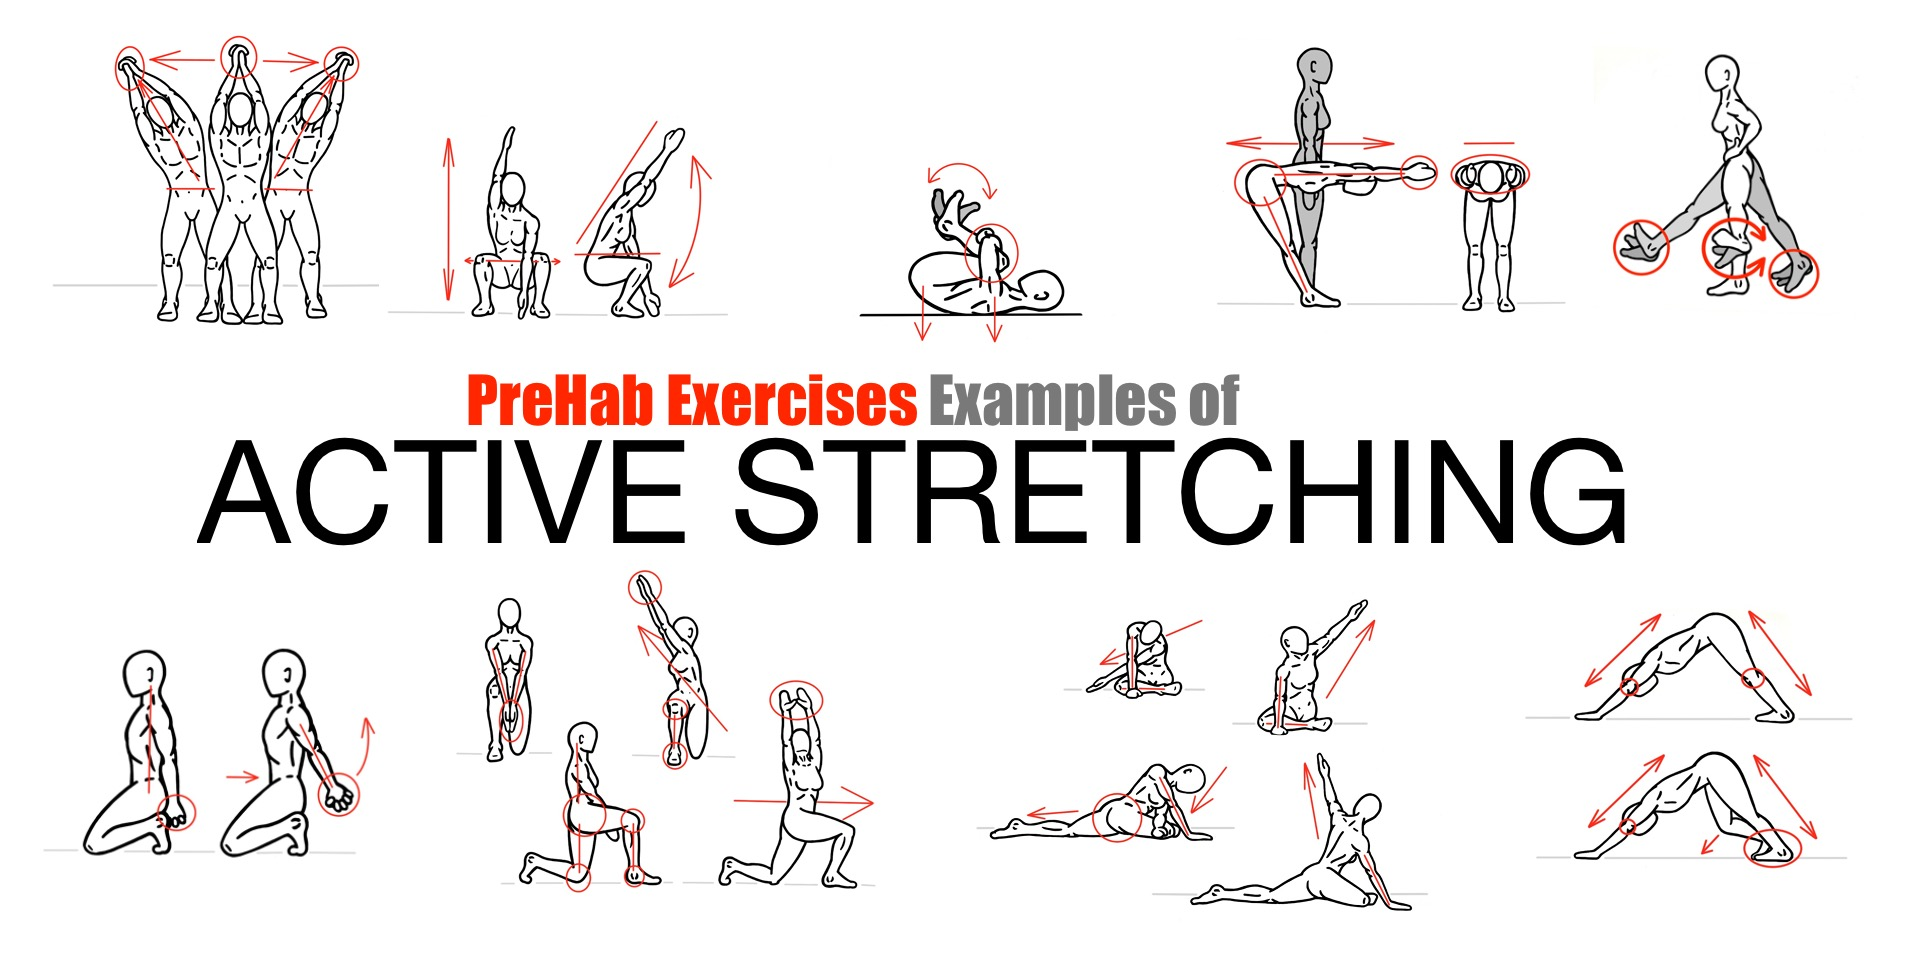 The art of stretching prehab exercises.